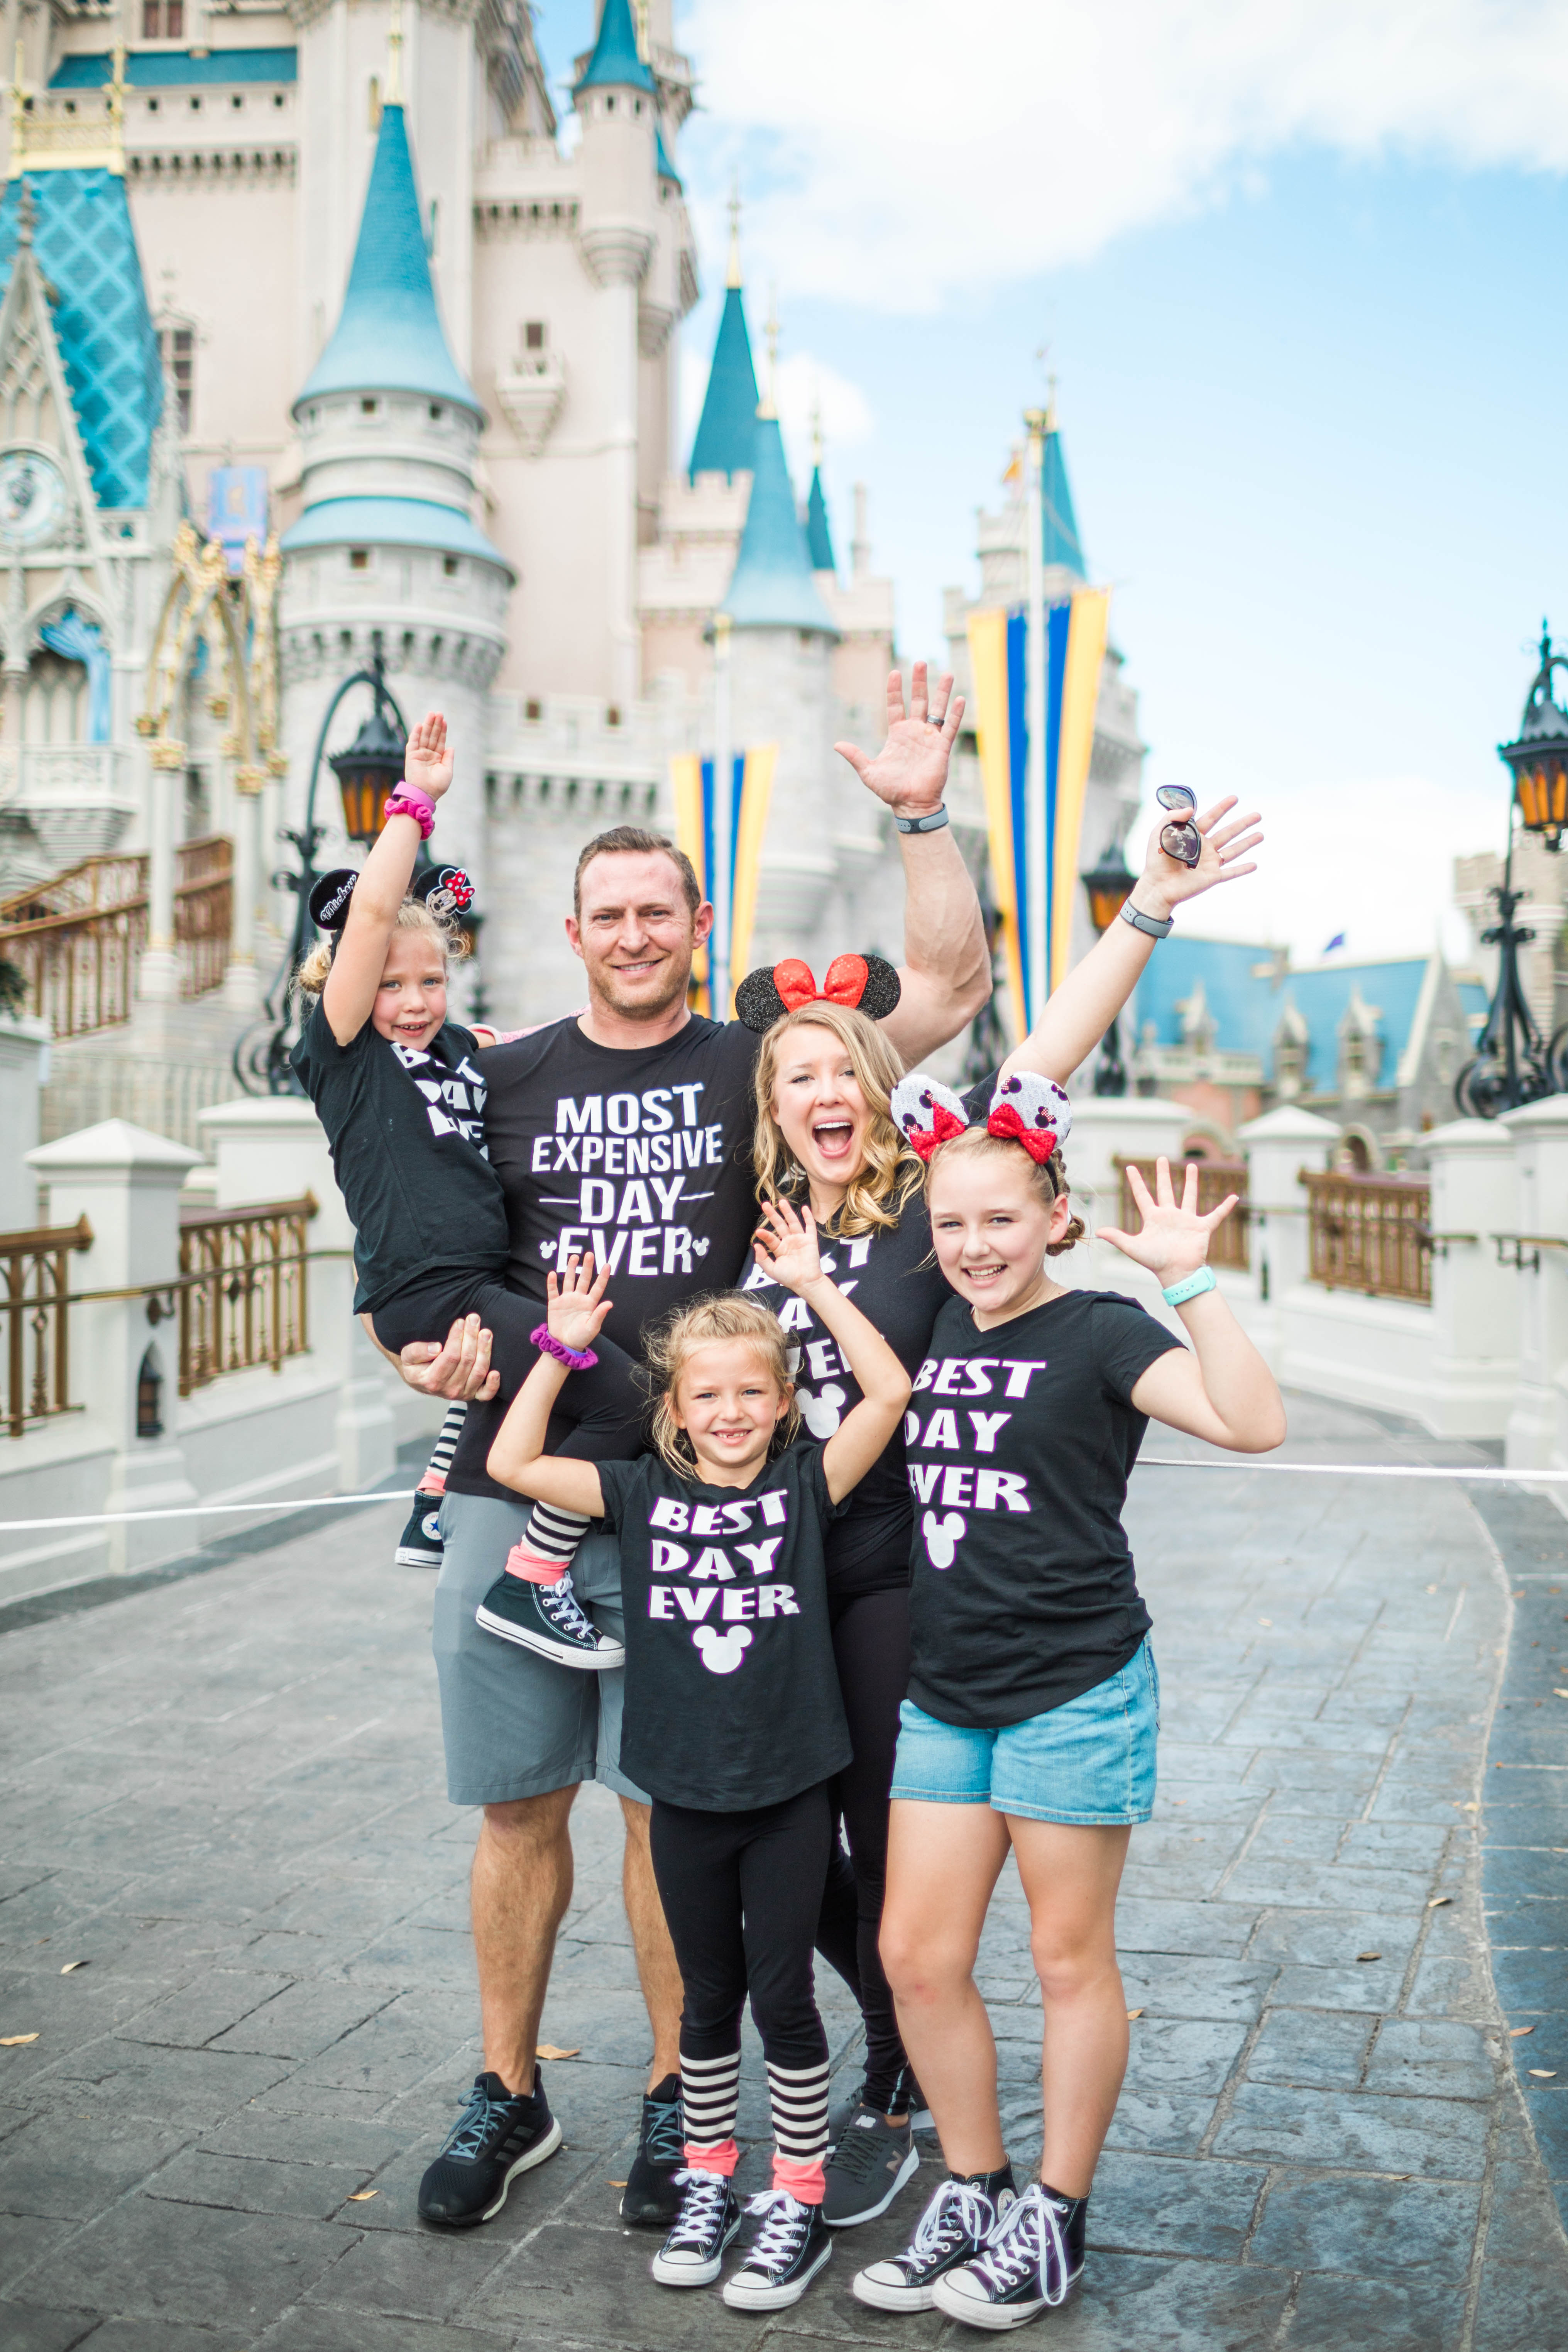 10 Things you Need to Know Before Going to Disney!